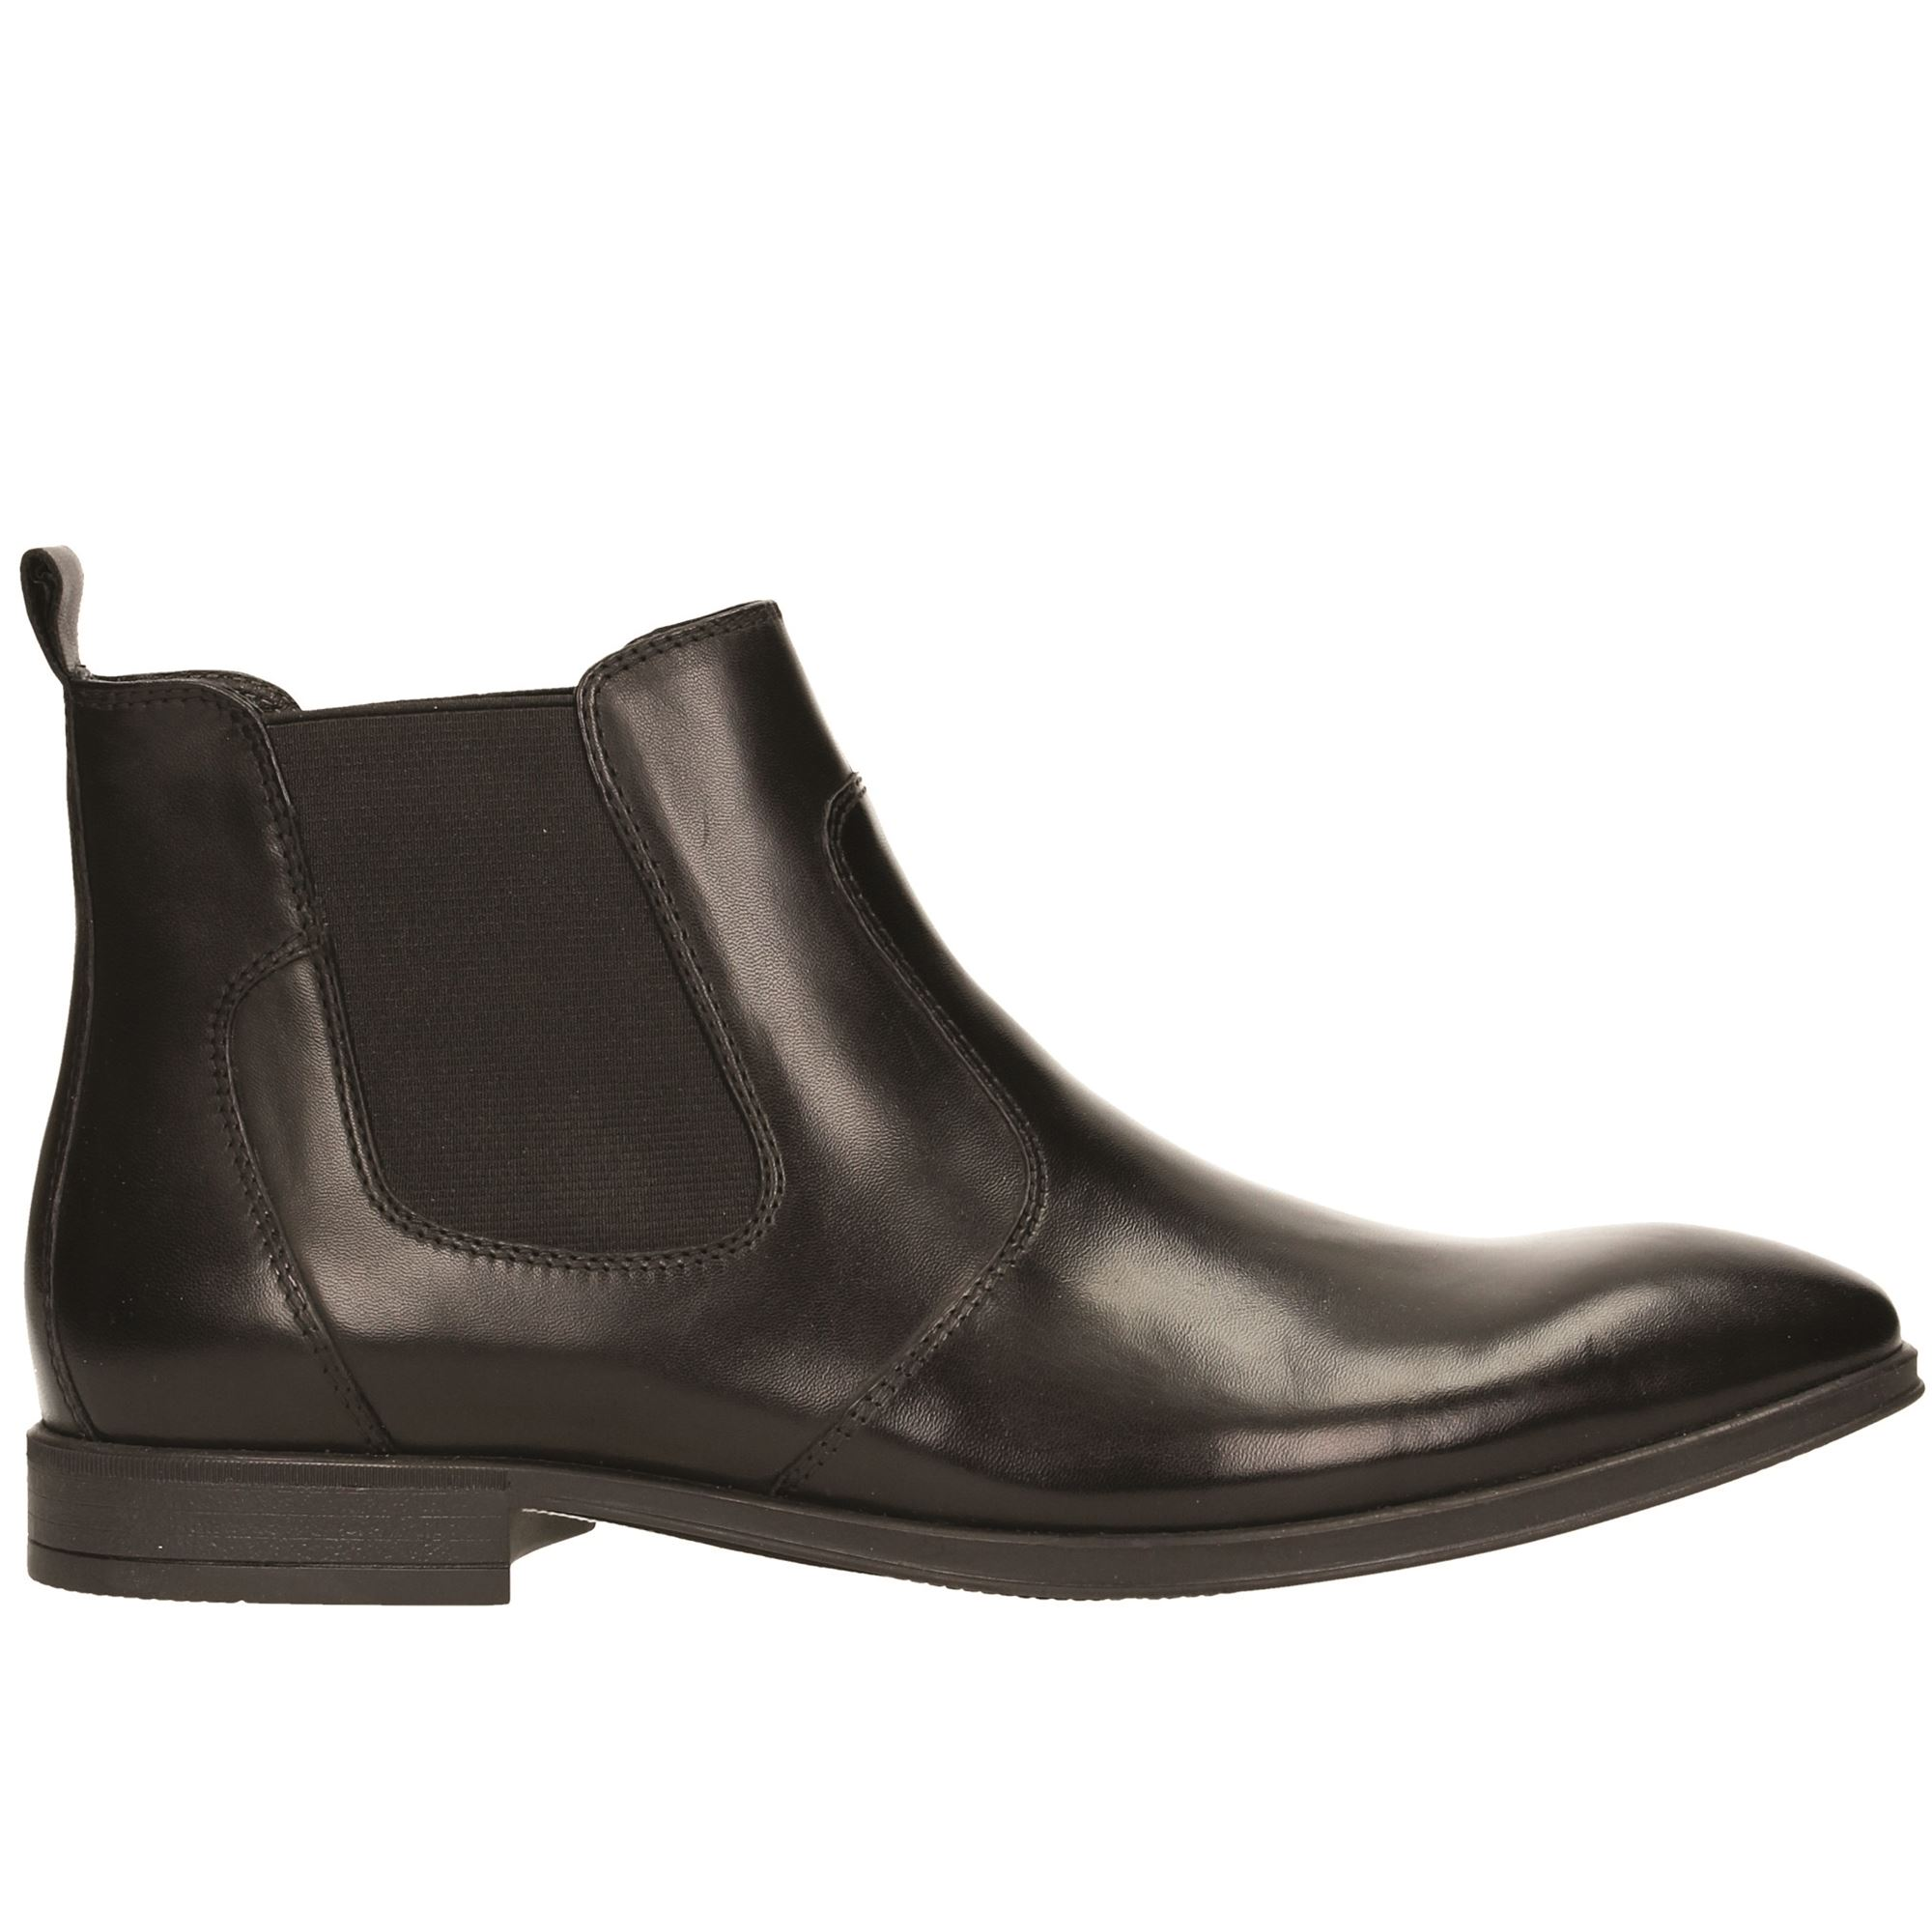 Tata Italia Shoes Man Stivaletti Black MH-342H06